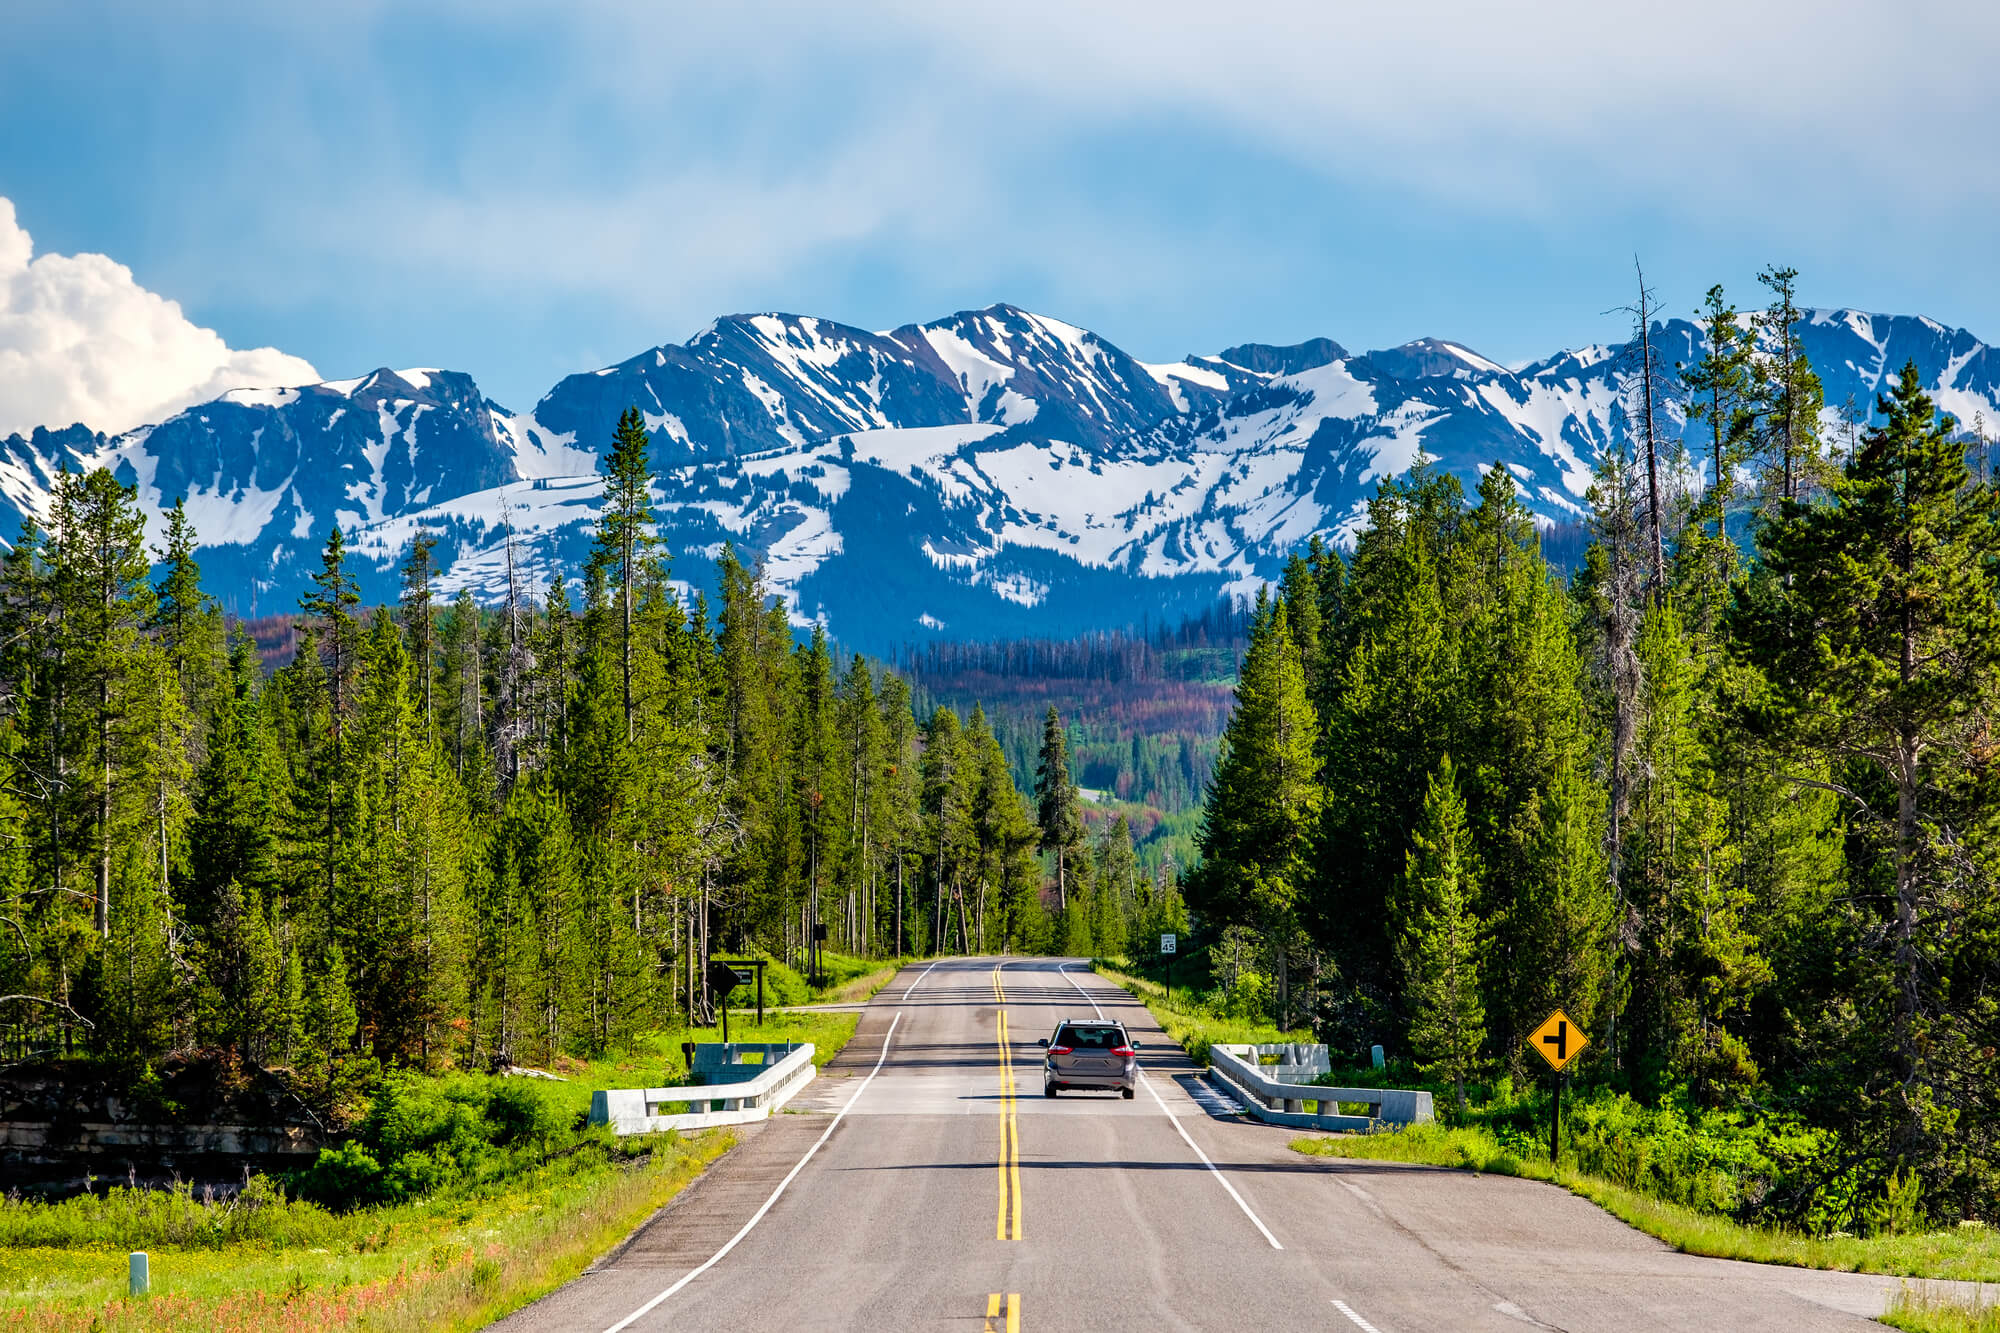 Road through Yellowstone with mountains in the distance